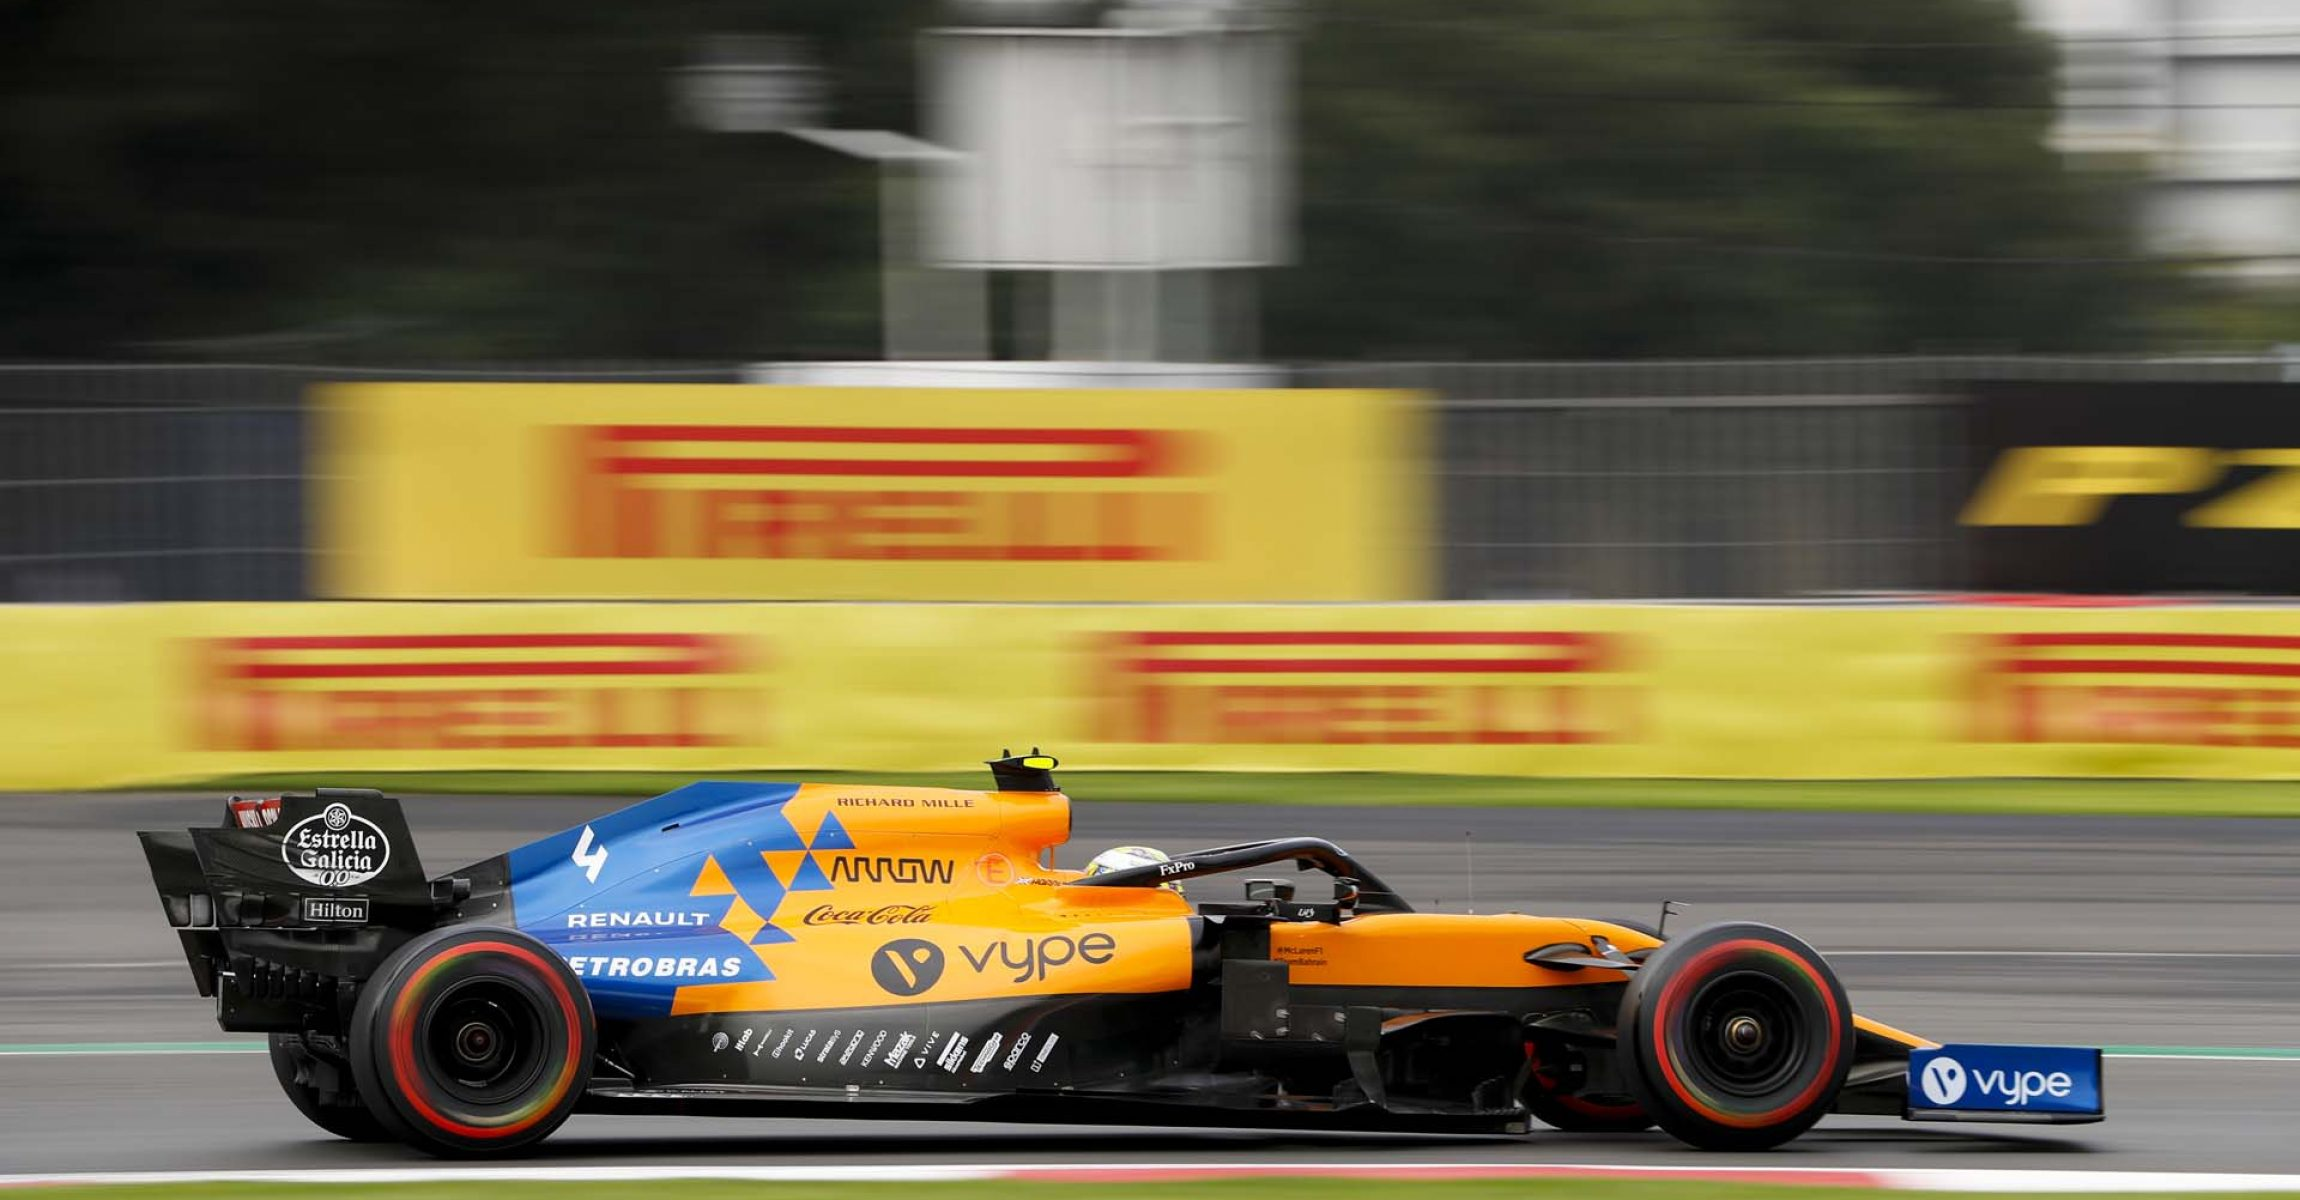 MEXICO CITY - OCTOBER 25: Lando Norris, McLaren MCL34 during the 2019 Formula One Mexican Grand Prix at Autodromo Hermanos Rodriguez, on October 25, 2019 in Mexico City, Mexico. (Photo by Zak Mauger / LAT Images)